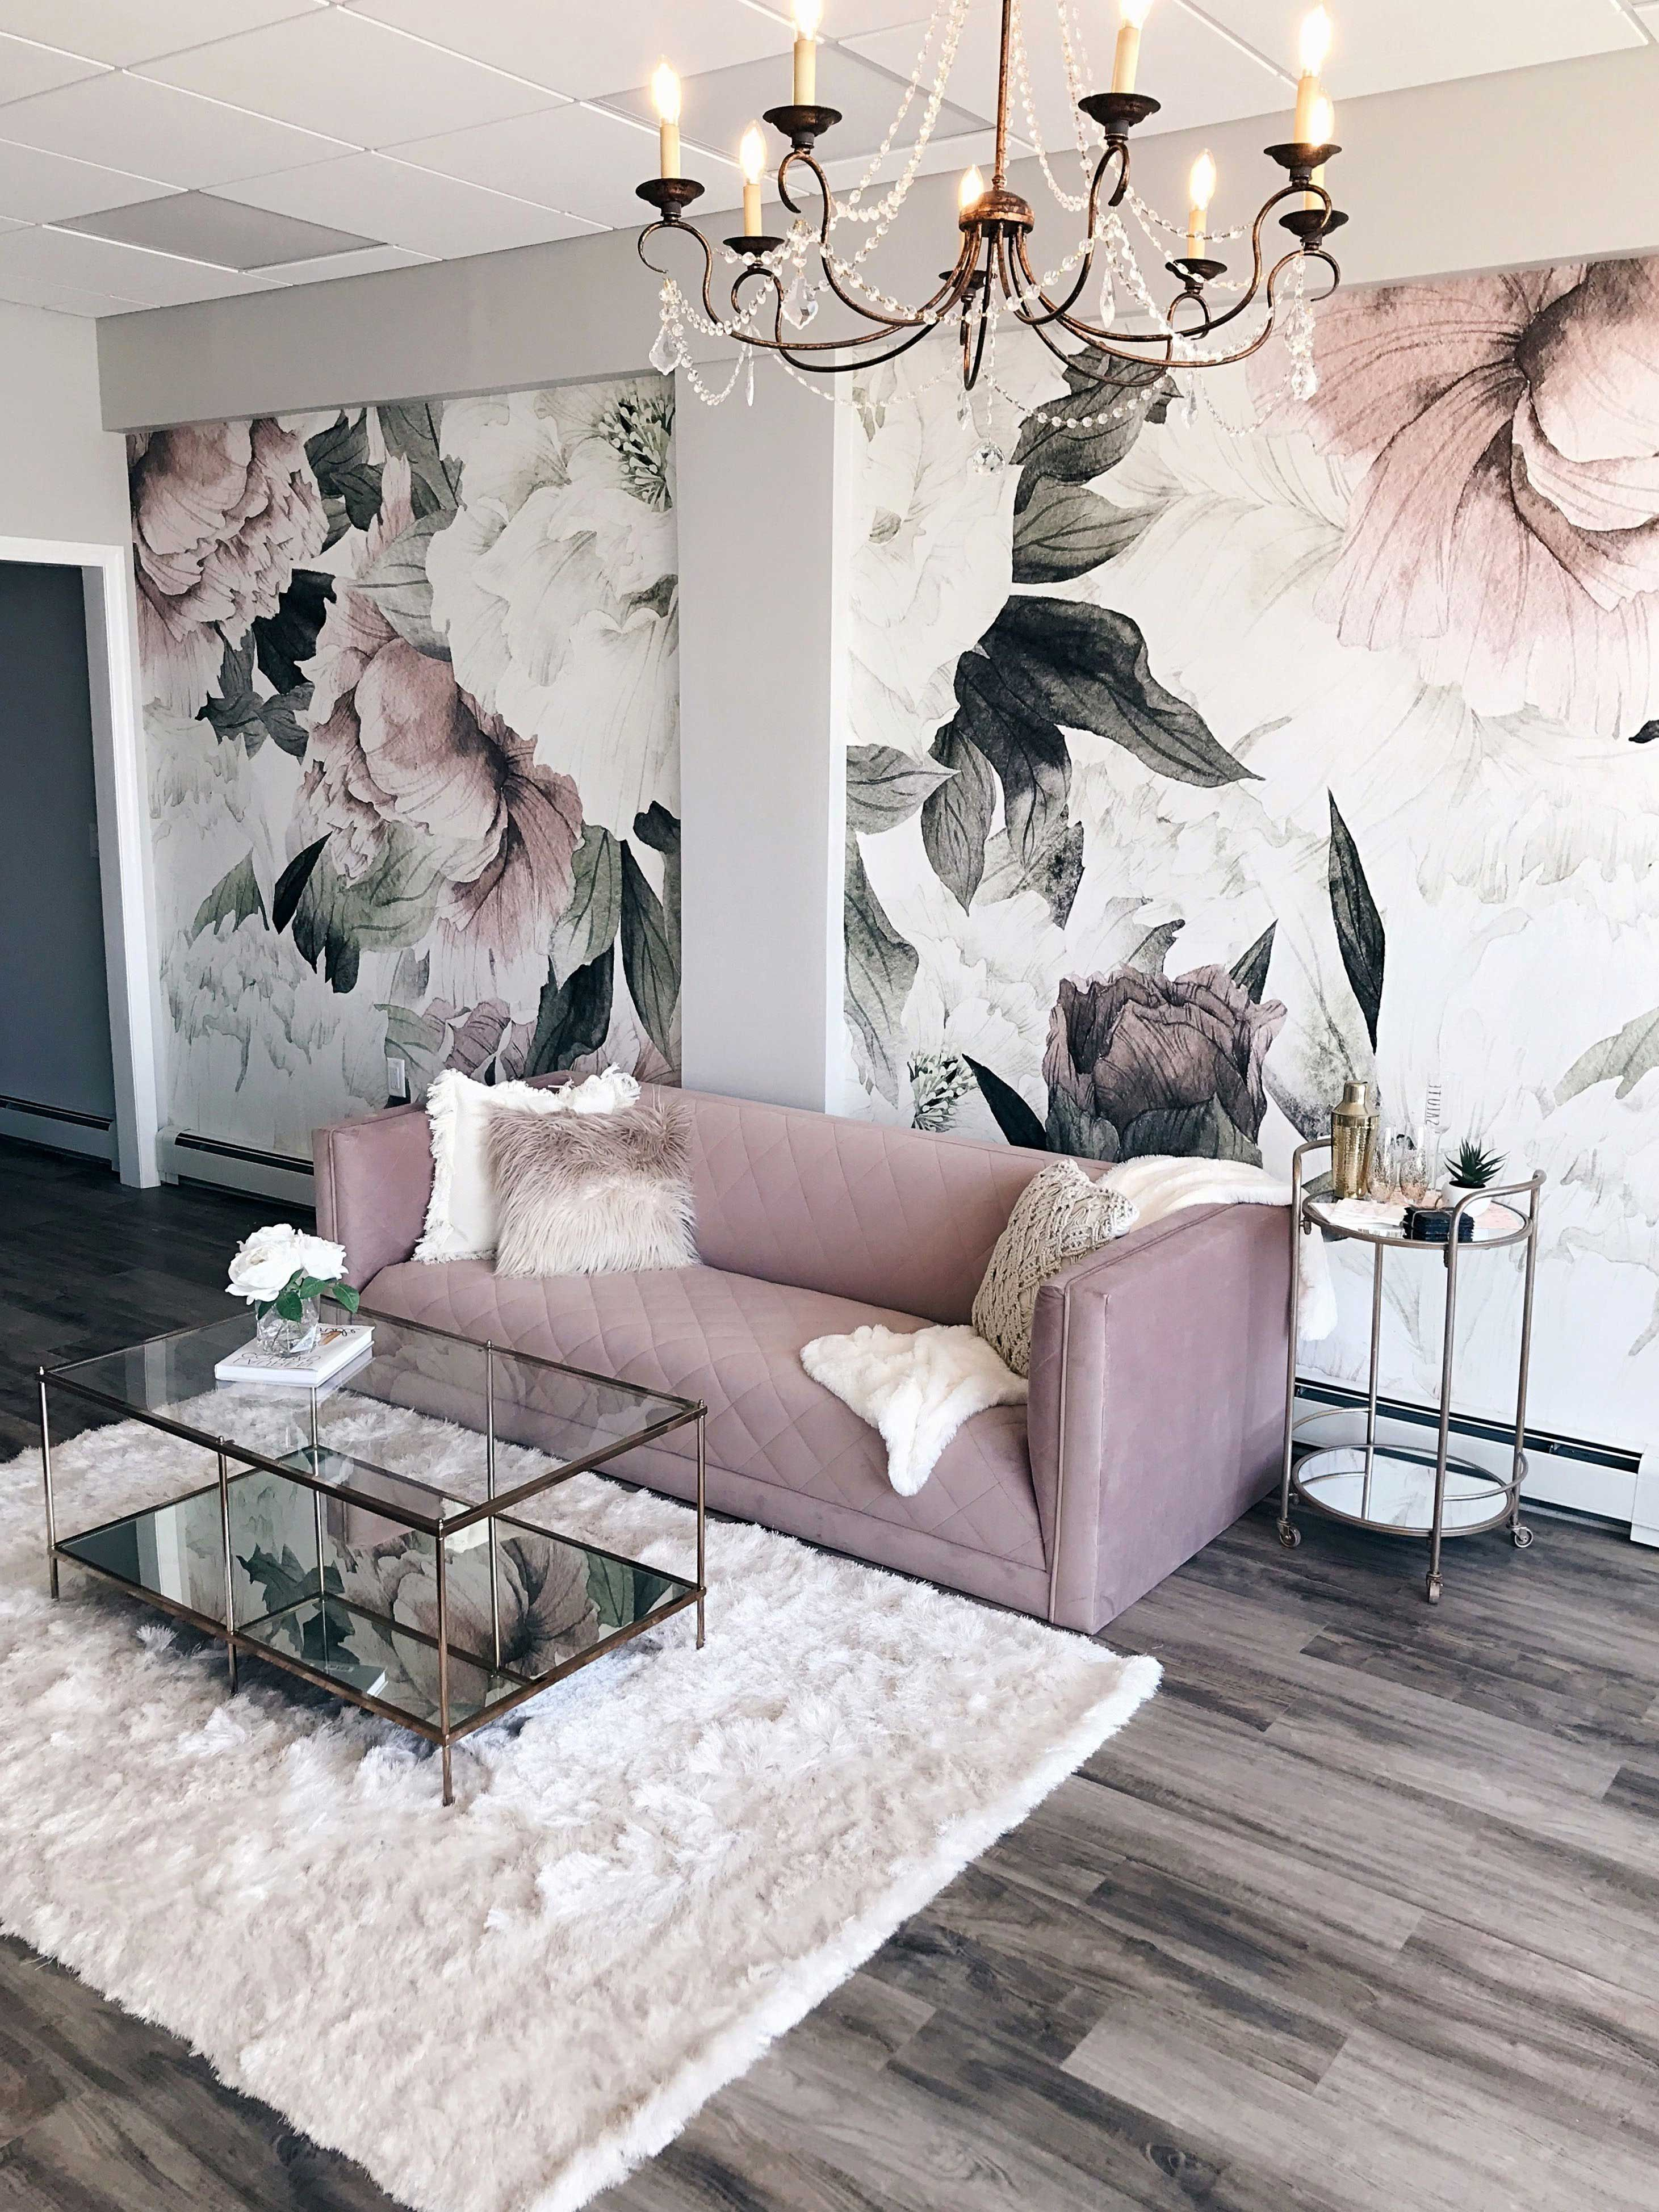 34 The Best Interior Design Ideas 25 For Your Home Best Inspiration Ideas That You Want In 2020 Beauty Room Decor Decor Diy Beauty Room Decor